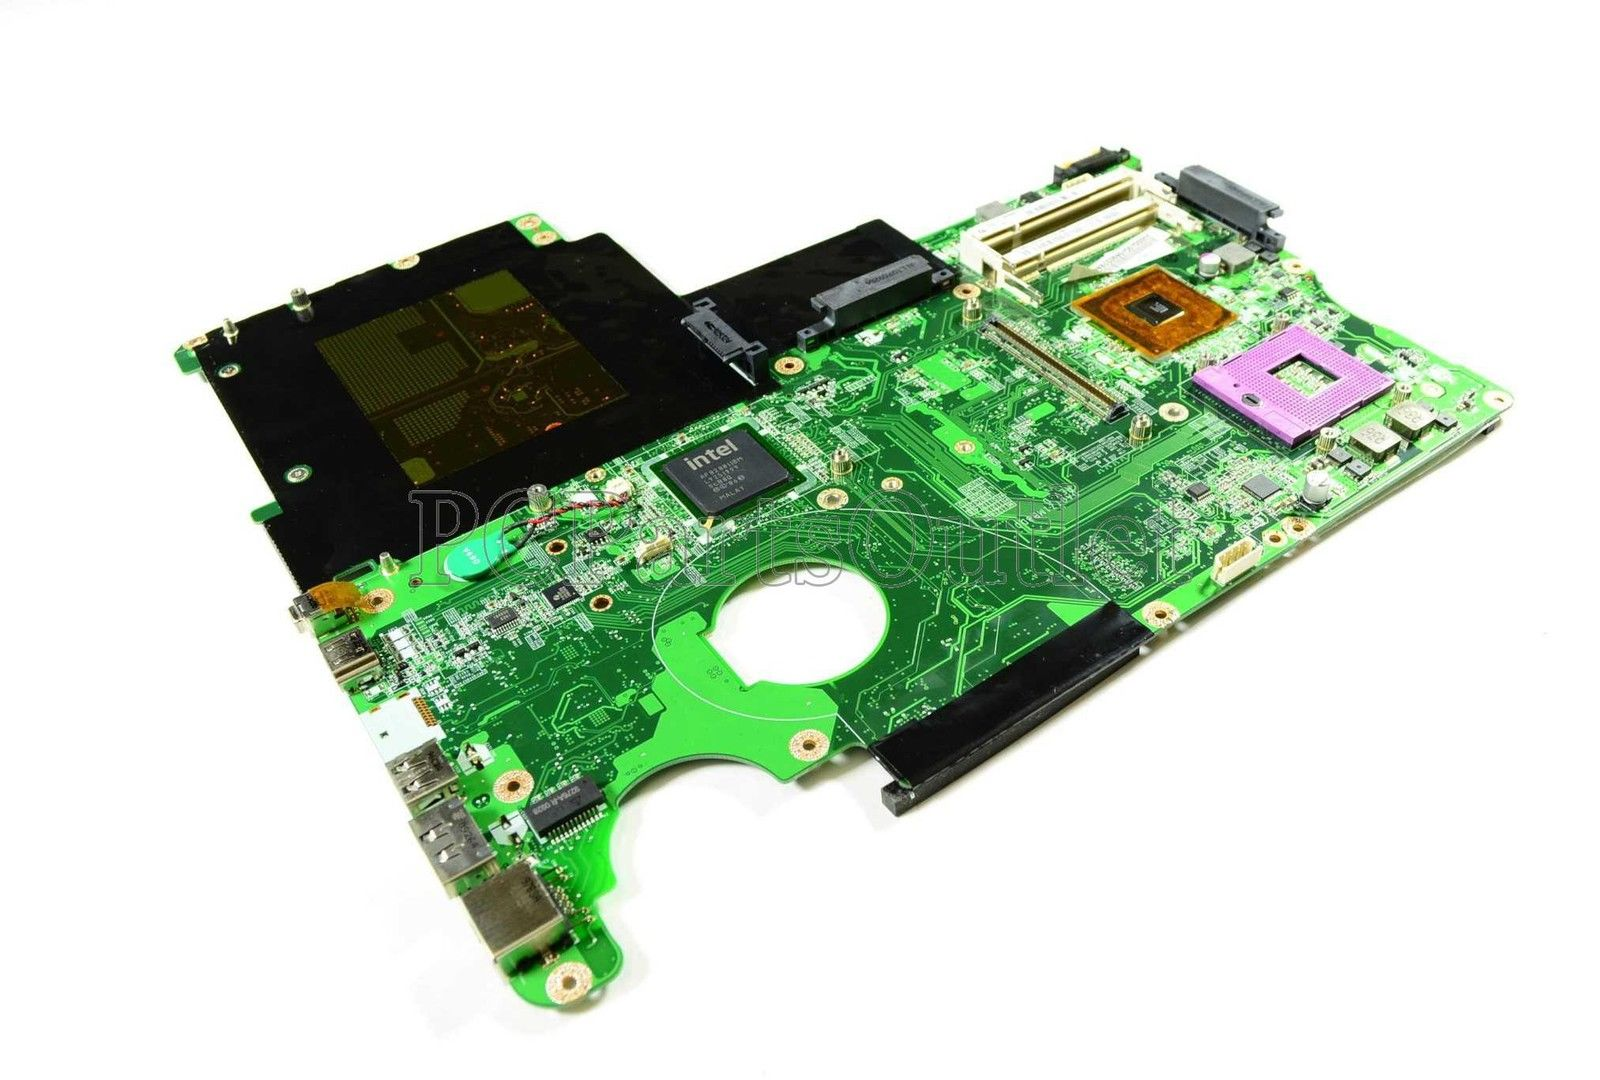 Toshiba Satellite P505 Series Intel CPU Motherboard A000049540 G